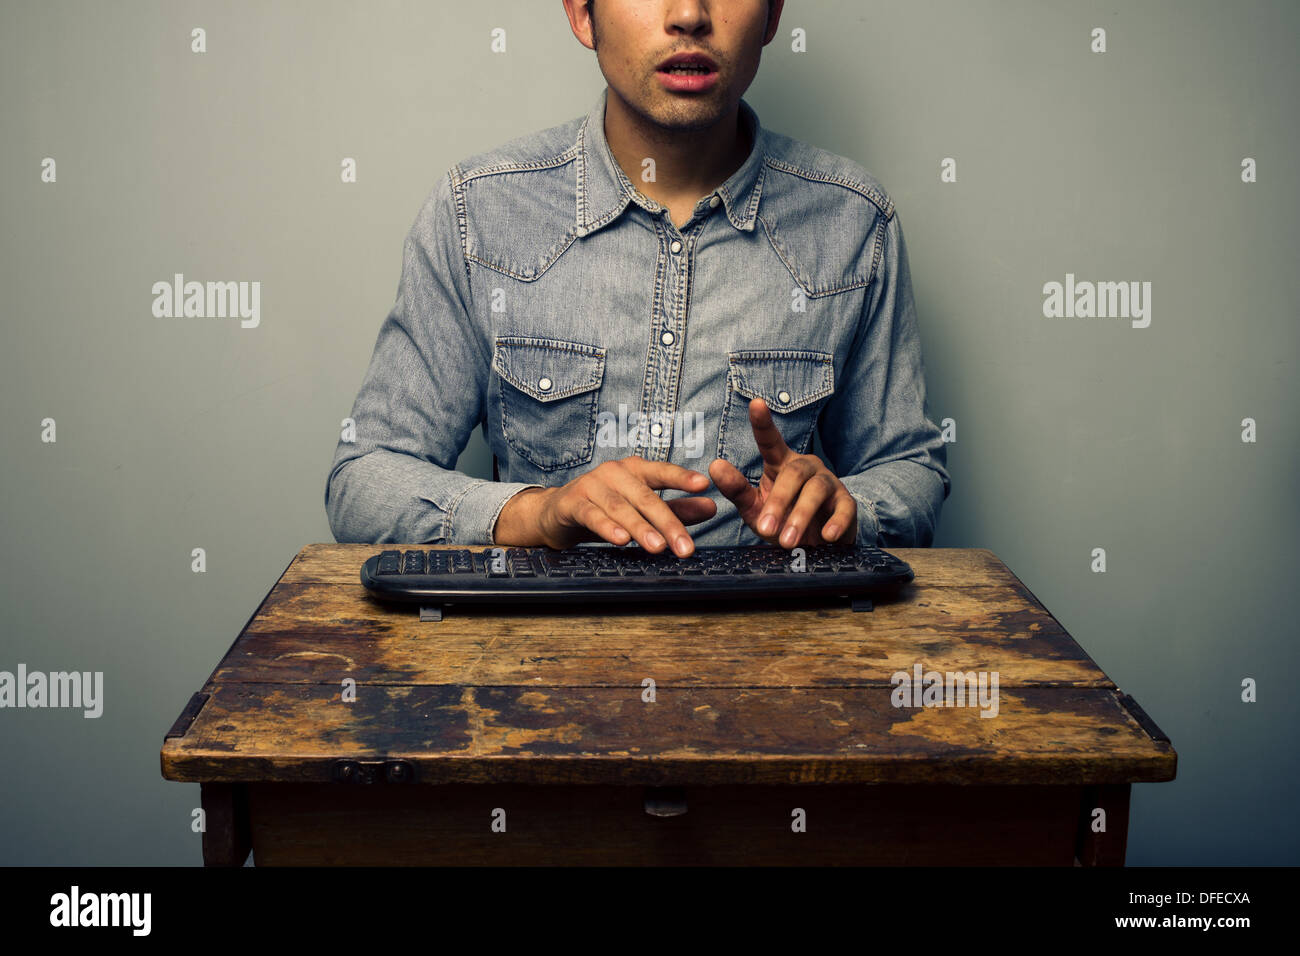 Young man is sitting at an old wooden desk and typing on a wireless keyboard - Stock Image